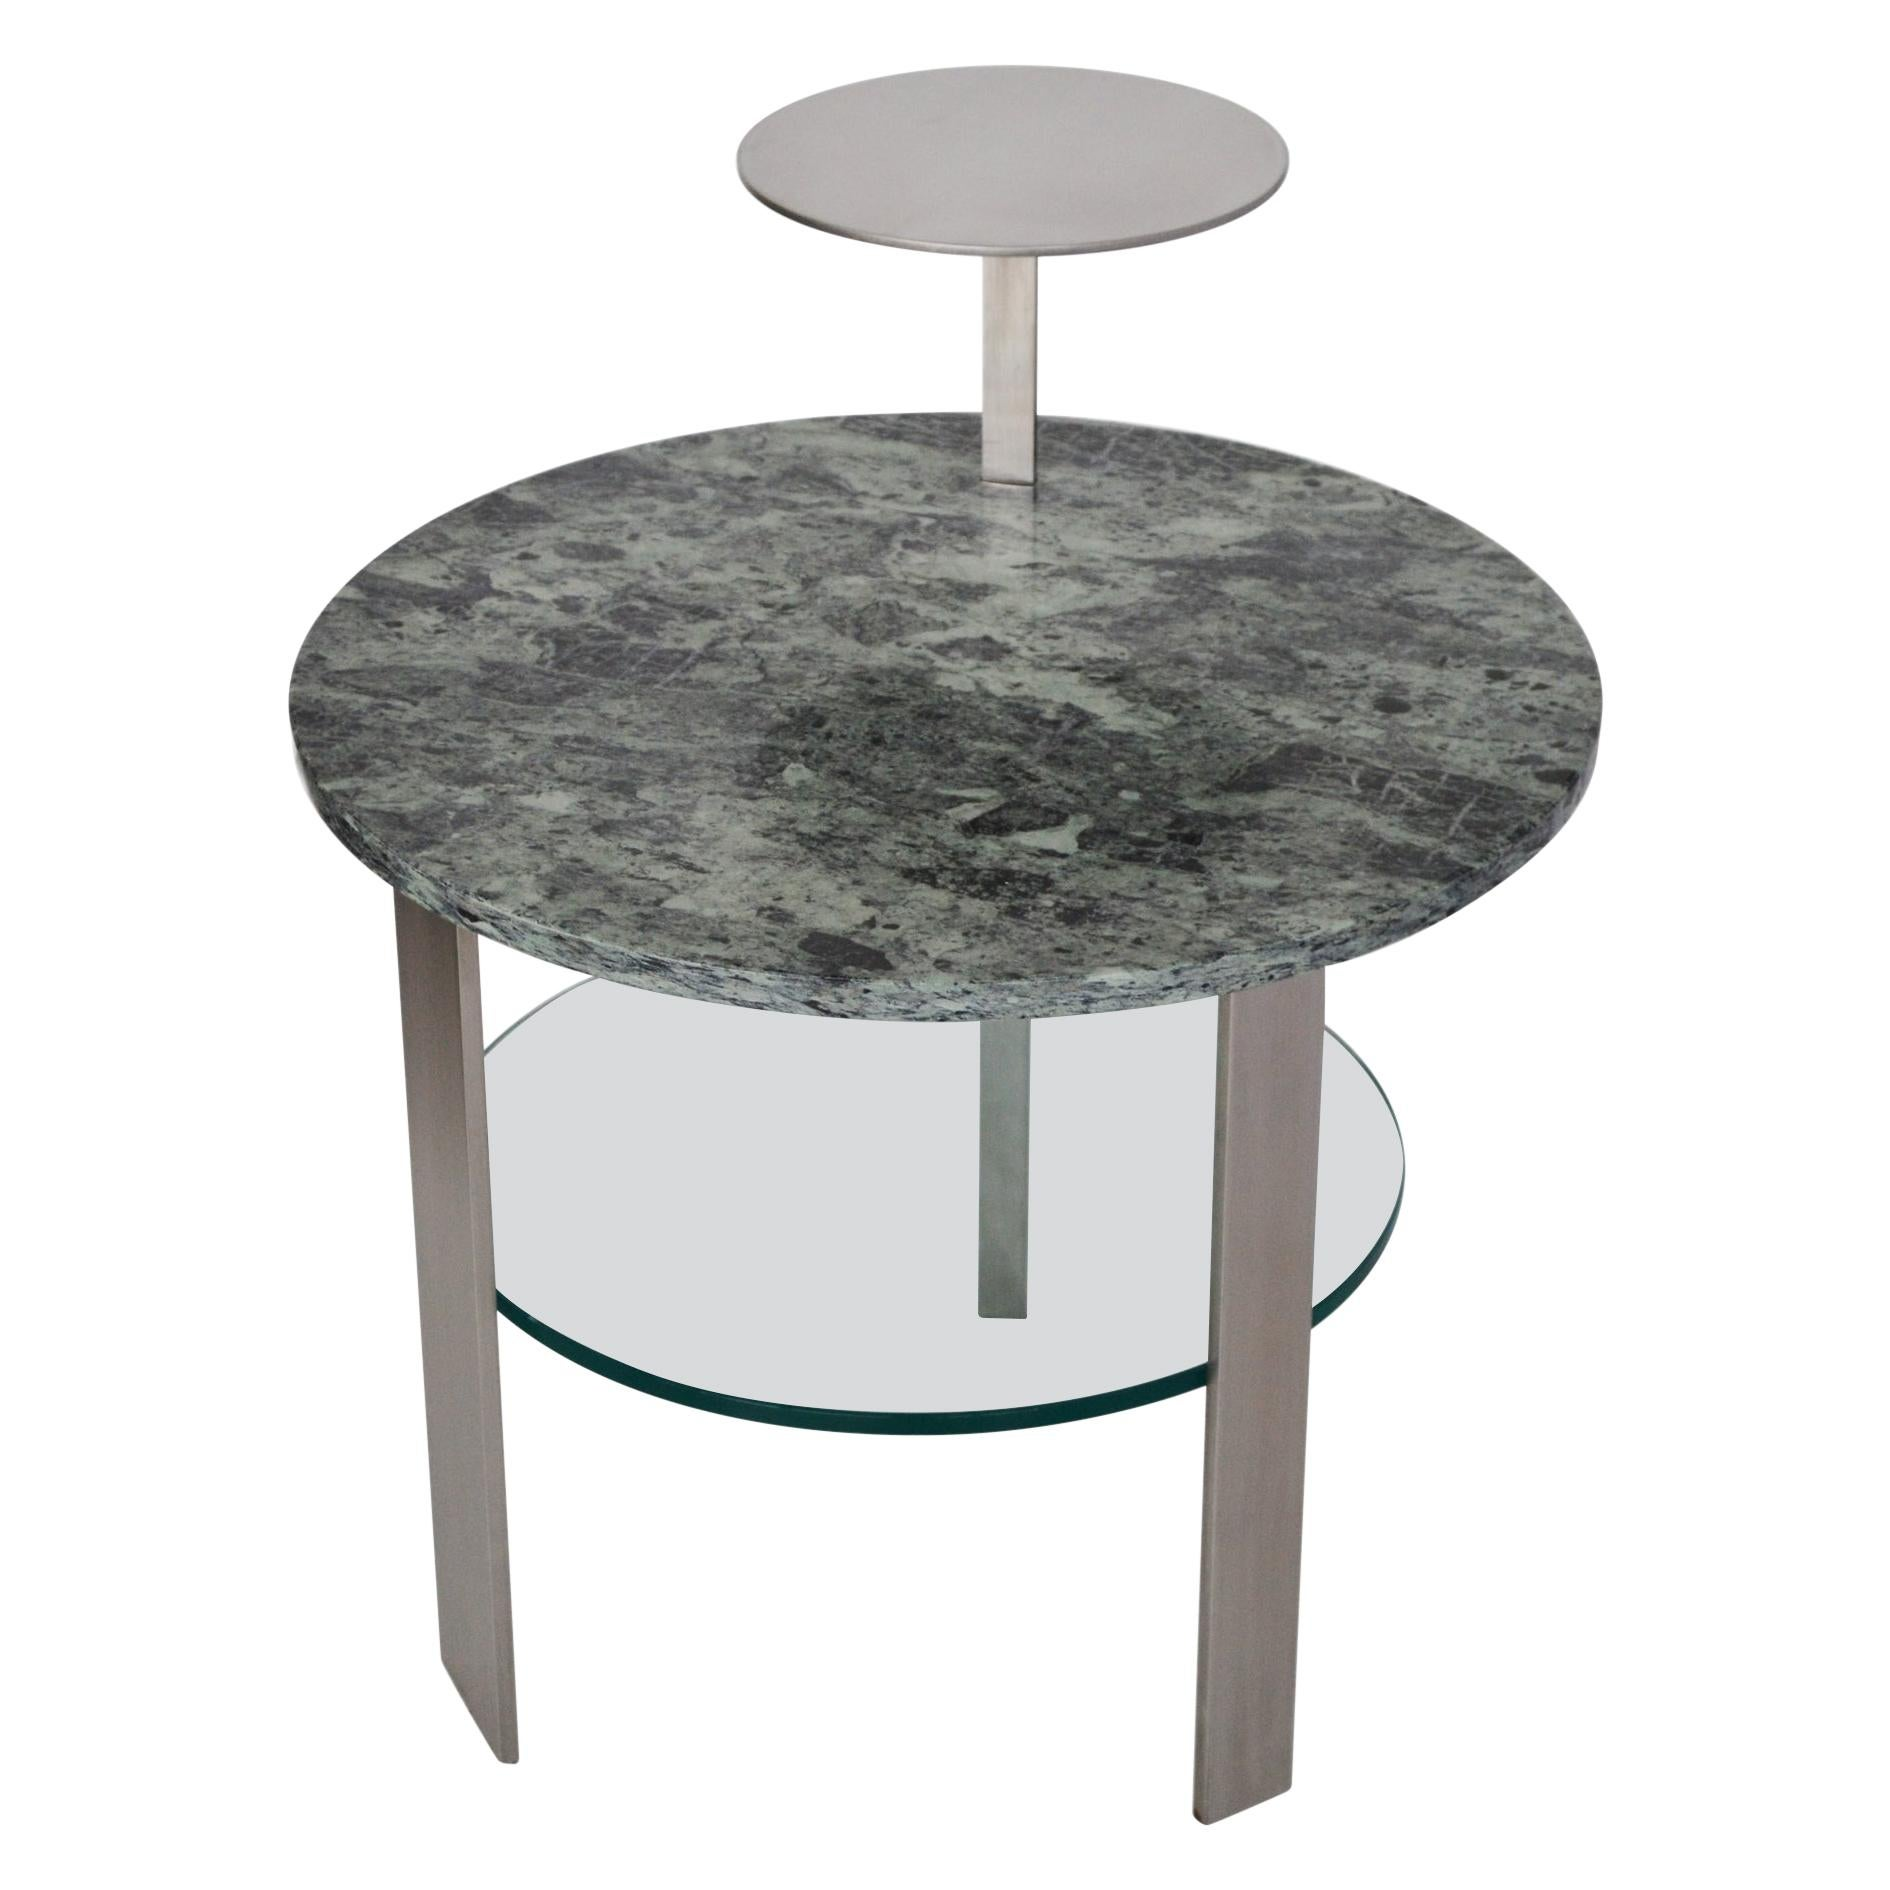 Modern round Coffee Table Green Issoire Marble Top Glass Top Satin Steel Base